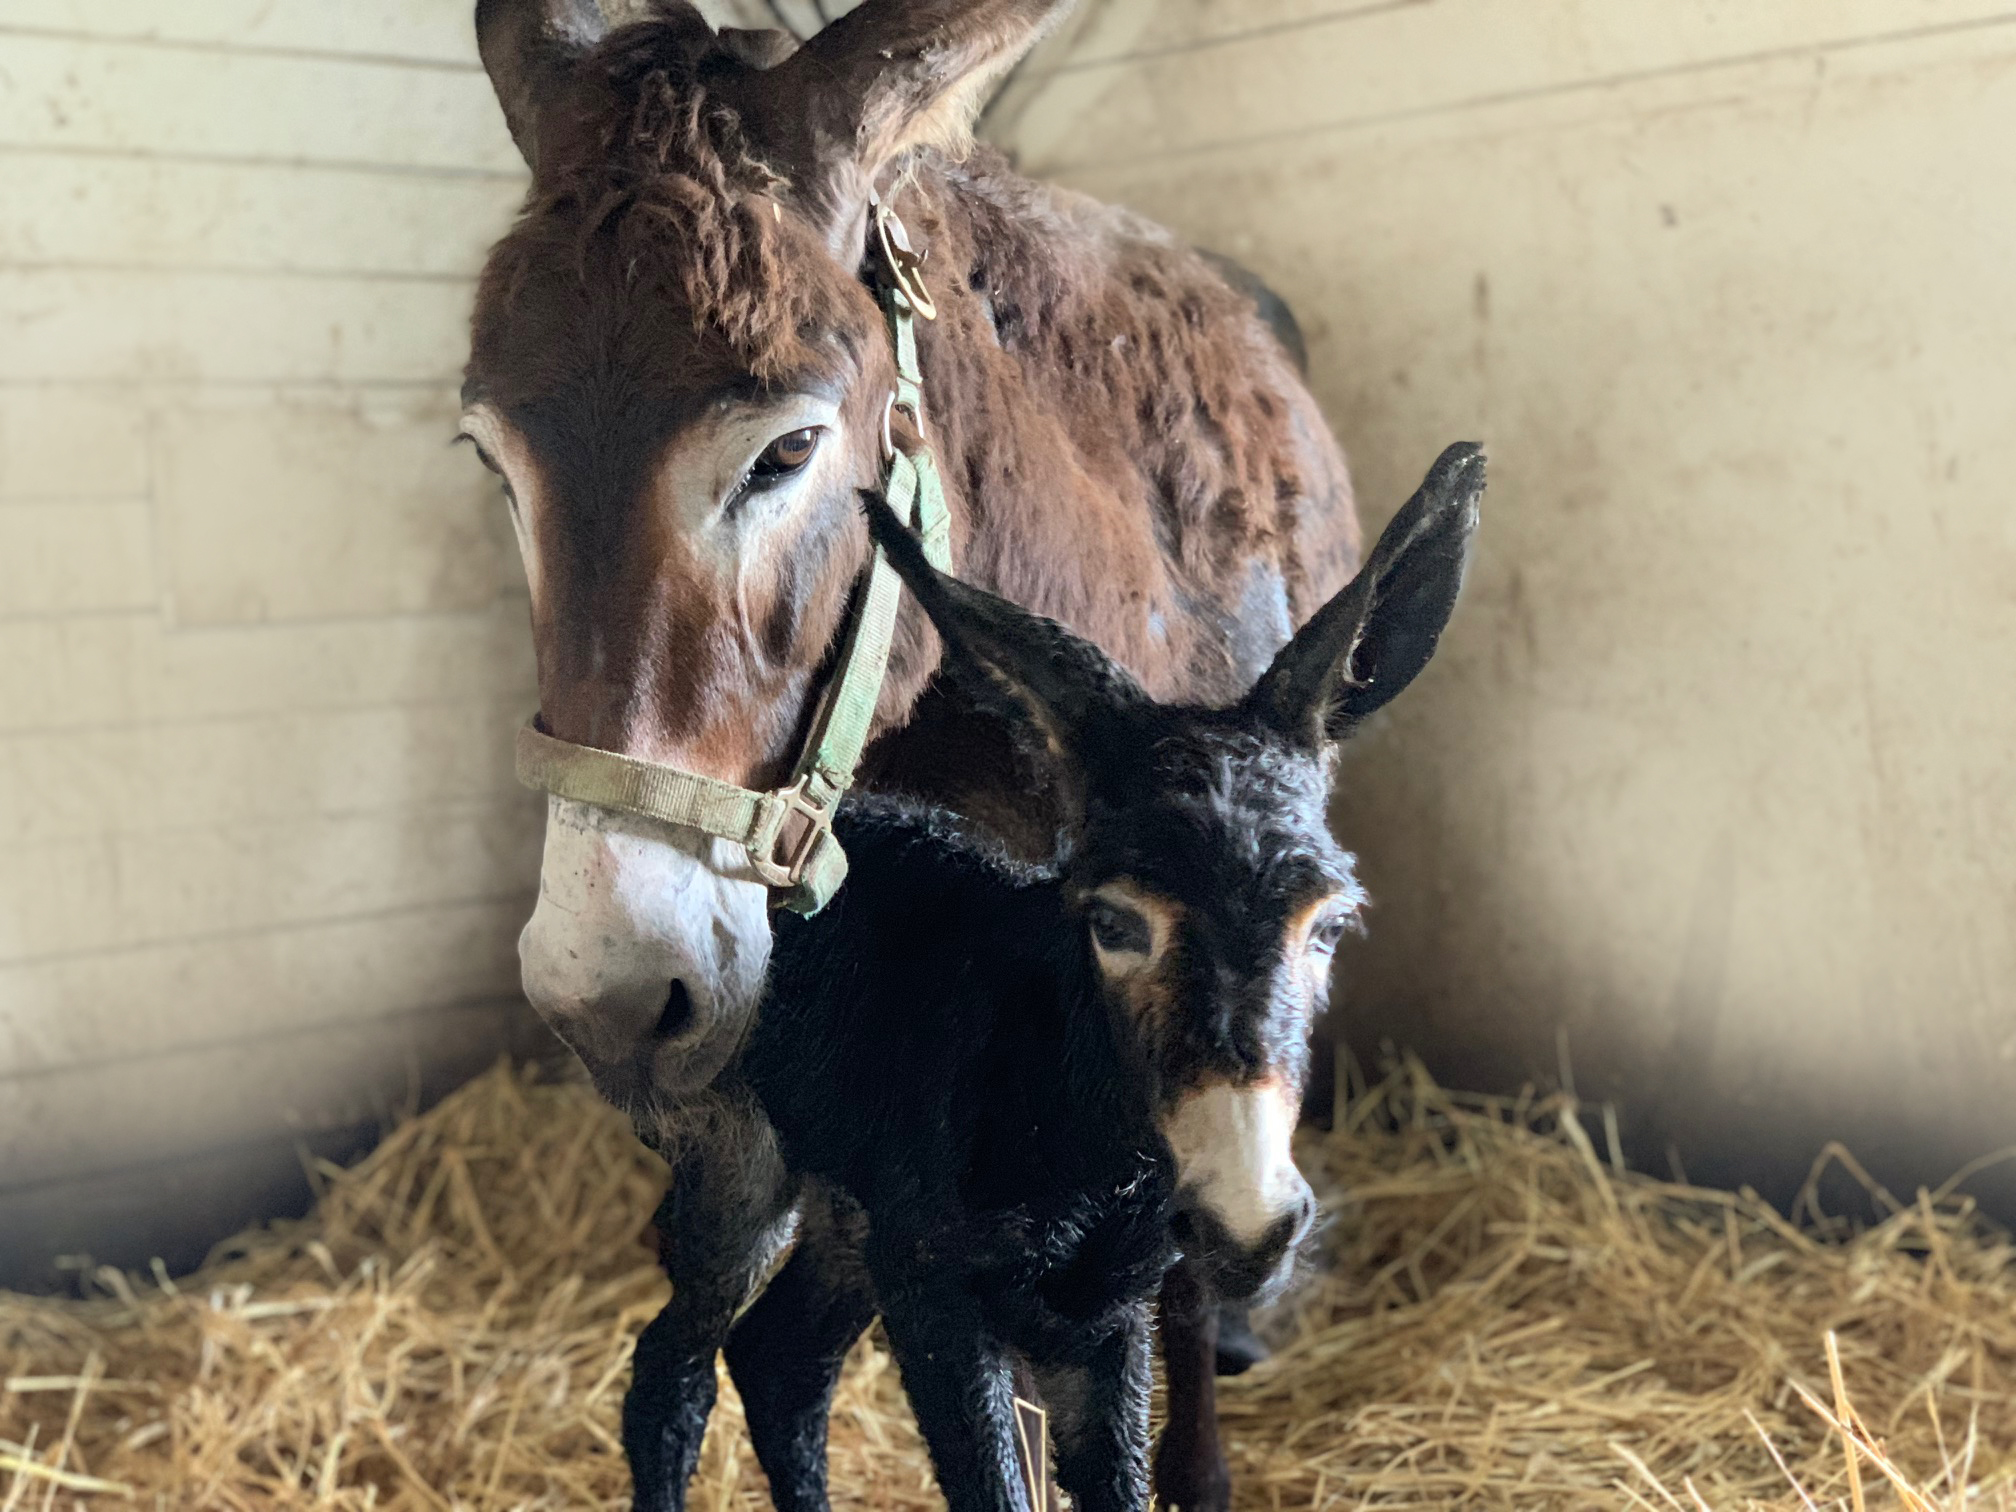 Fiona with her new baby girl who was born at Foxie G. Now known as Violet.